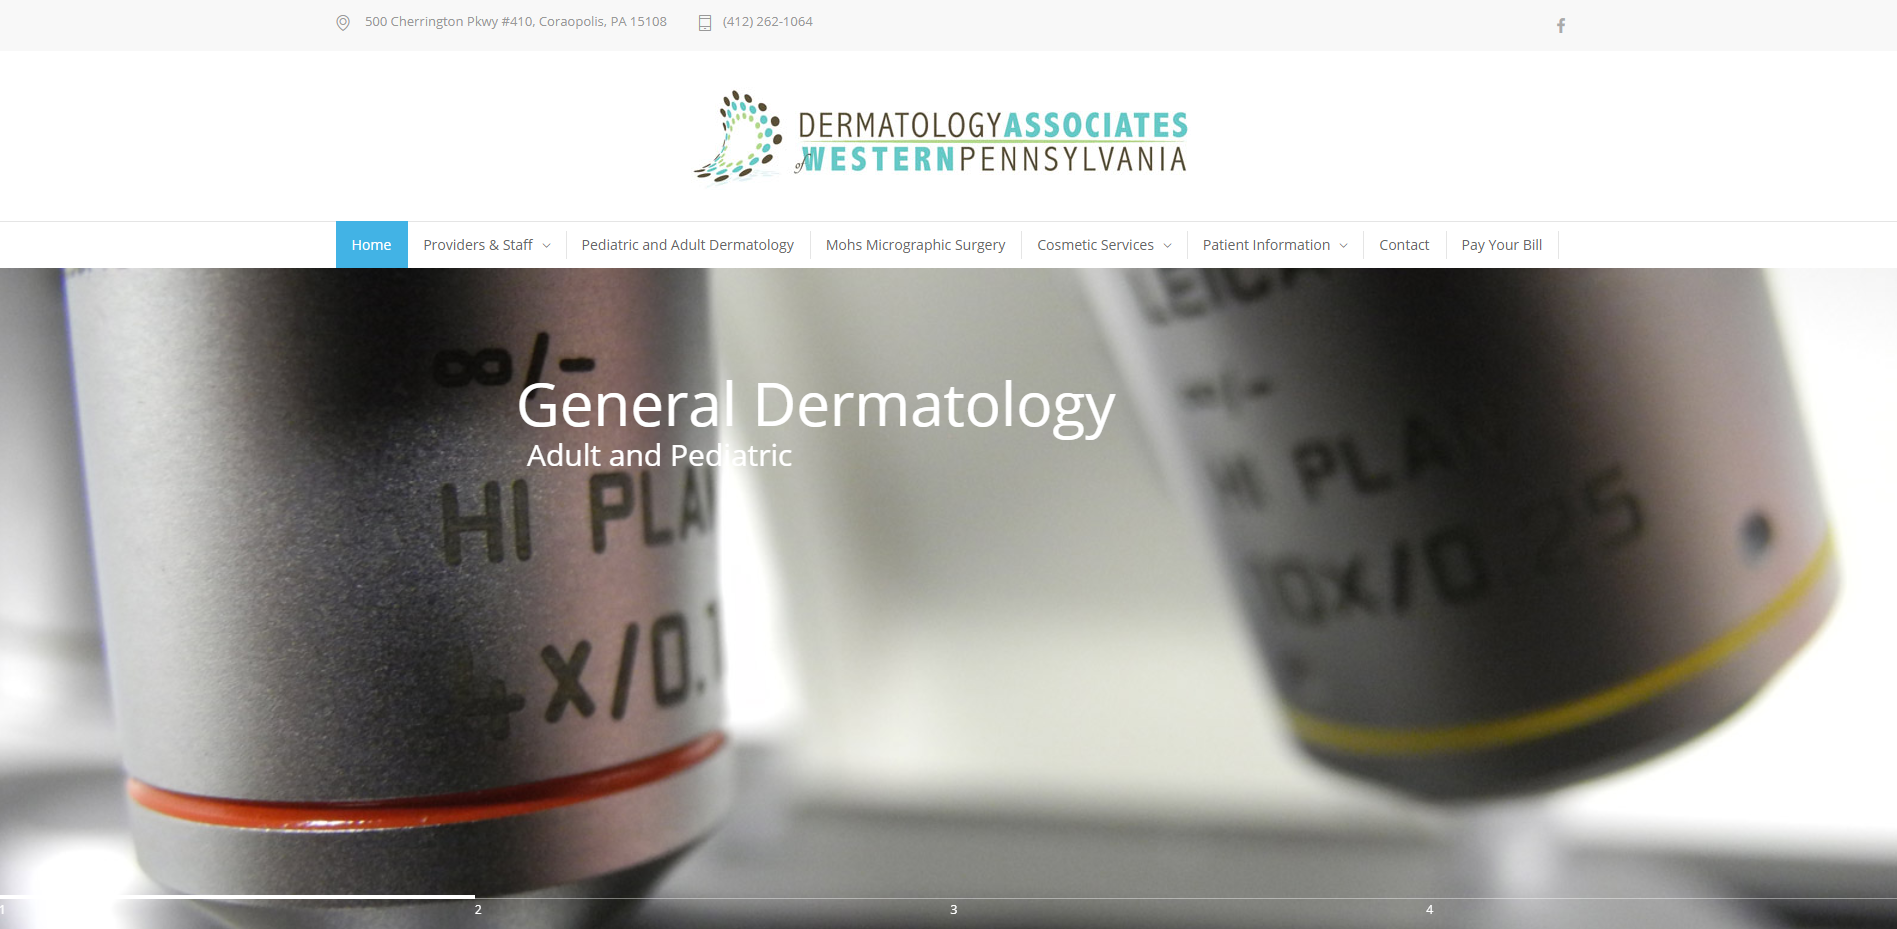 Dermatology Associates of Western Pennsylvania